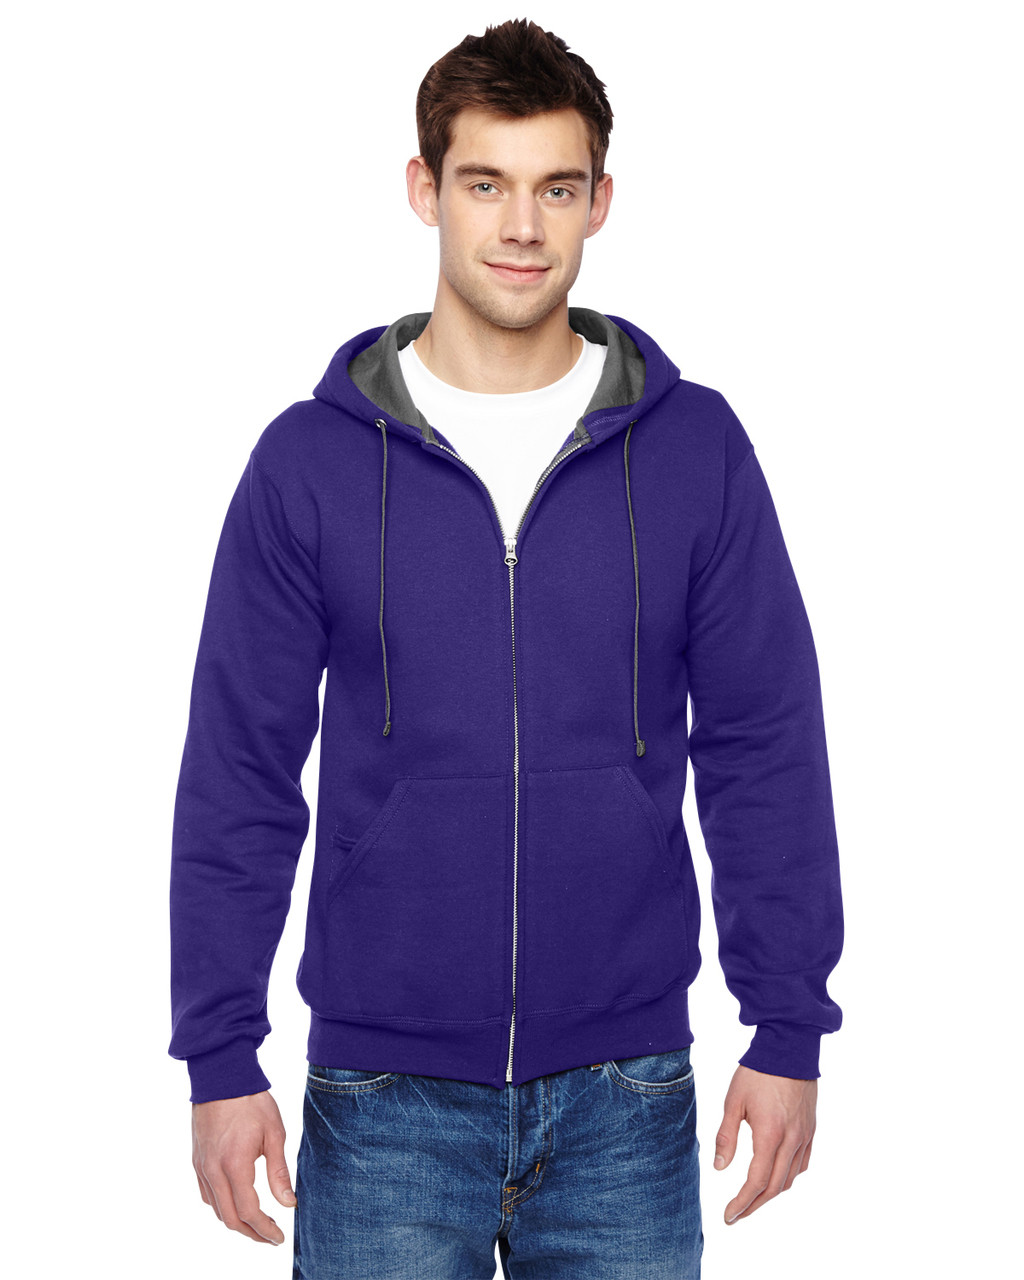 Purple - SF73R Fruit Of The Loom Softspun Full-Zip Hooded Sweatshirt | Blankclothing.ca